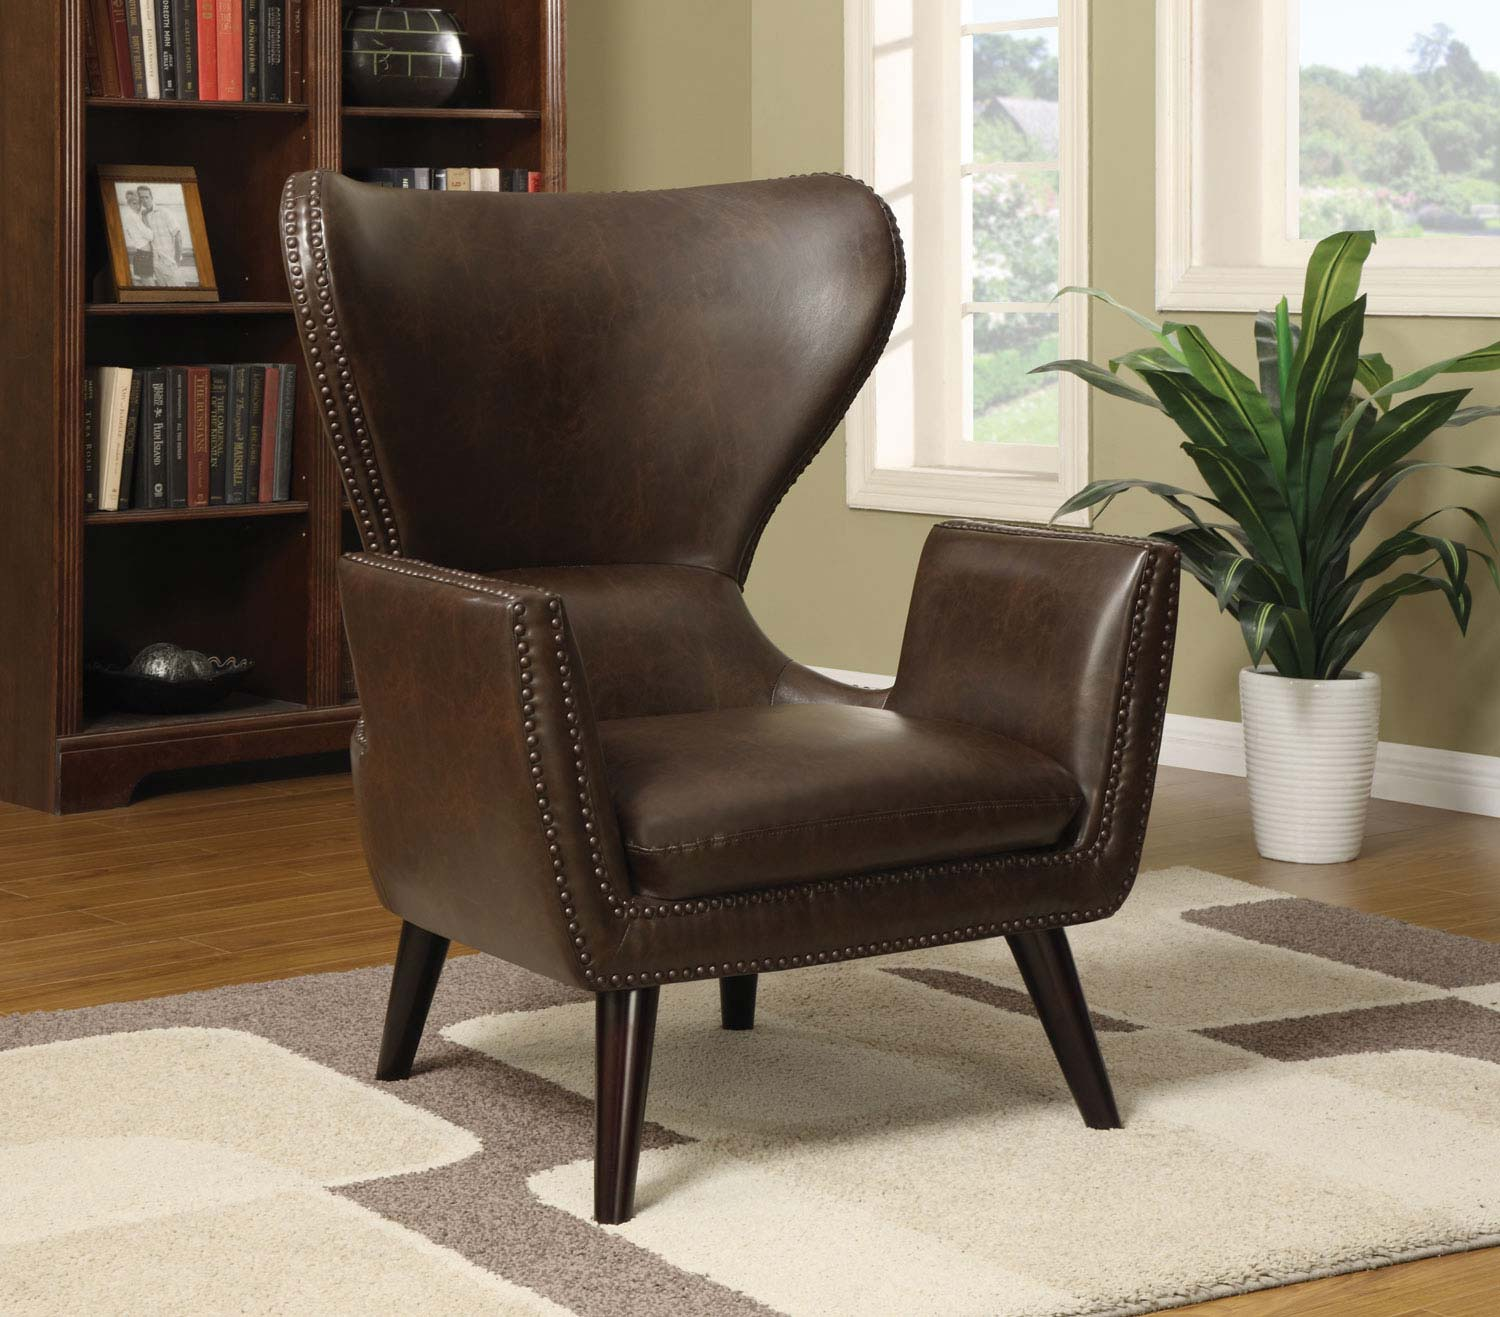 Coaster 902089 Accent Chair - Brown